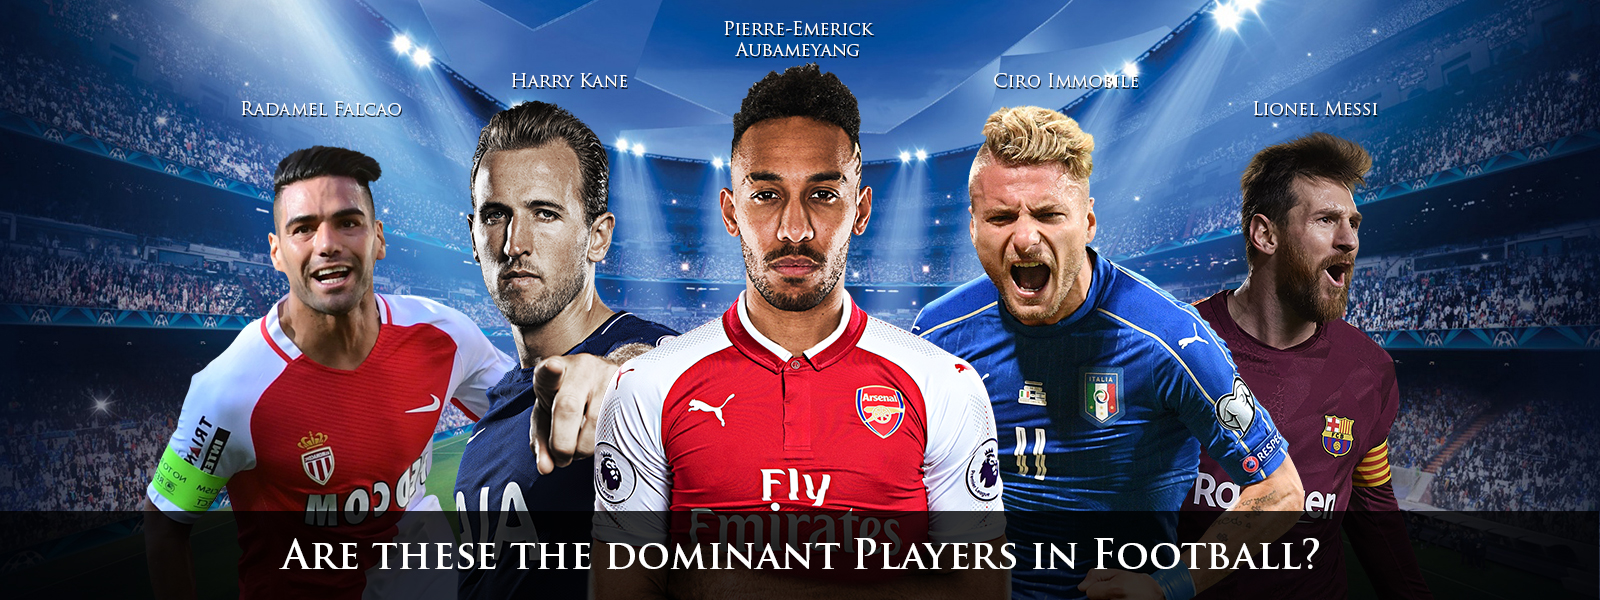 Are These The Dominant Players In Football?